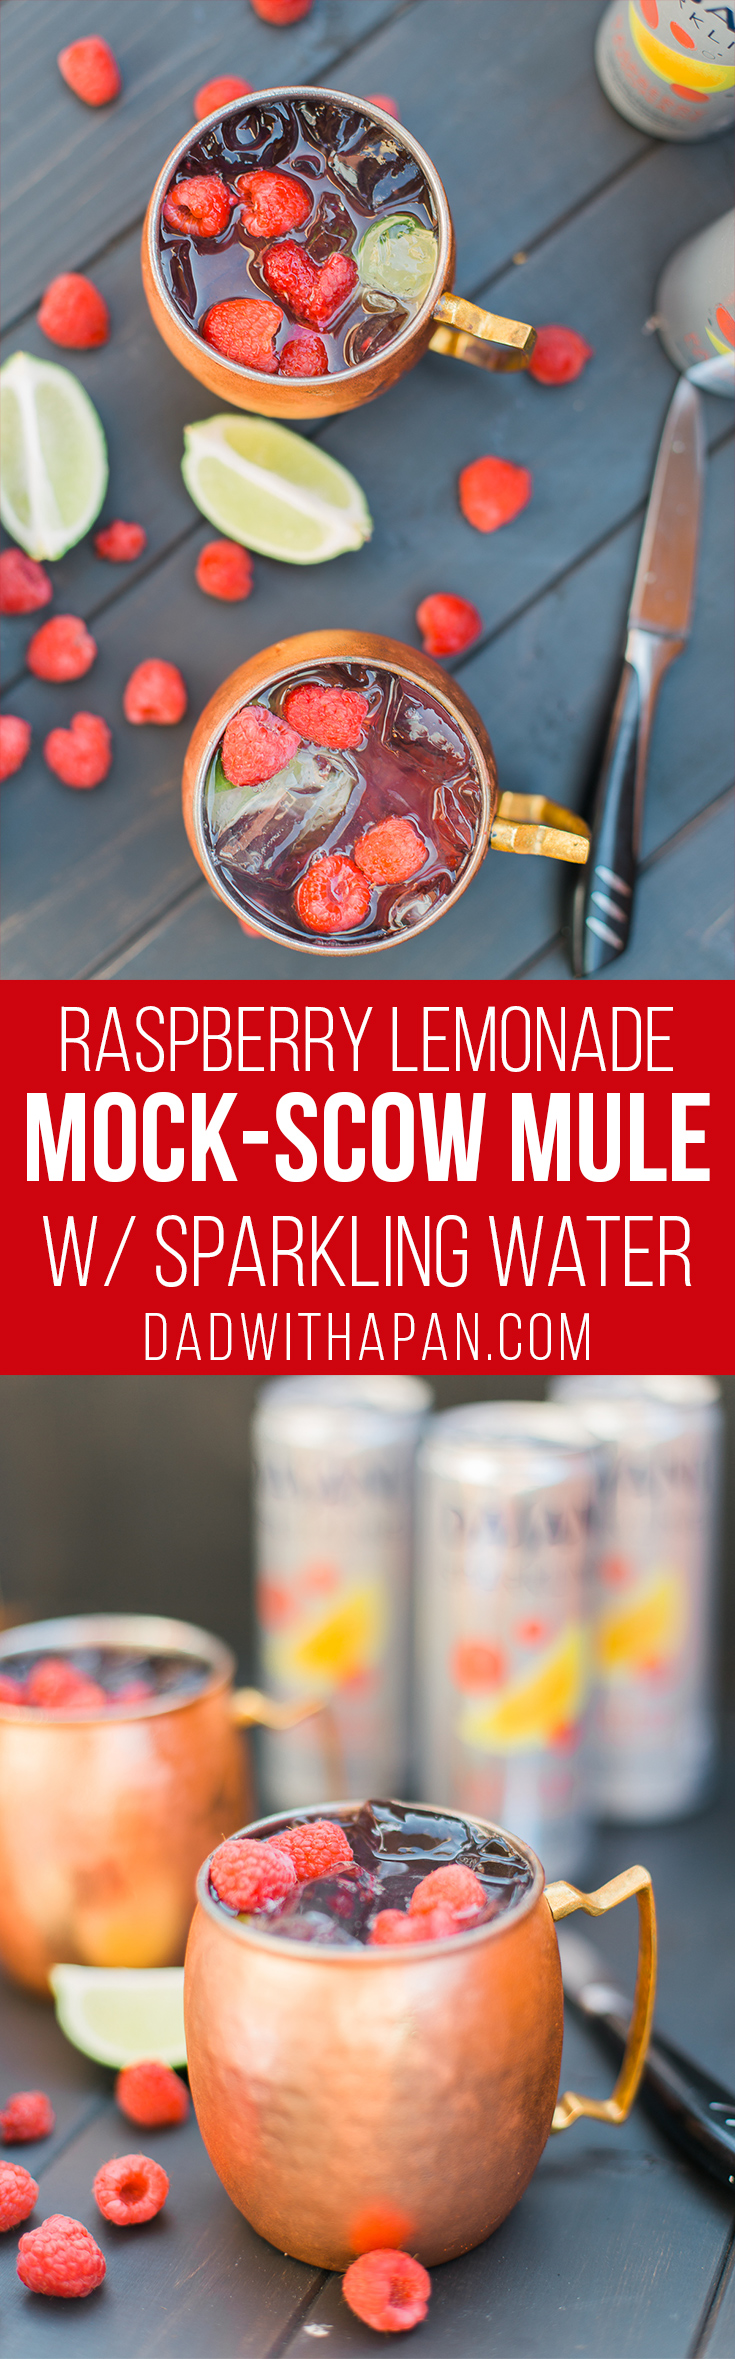 This Virgin Raspberry Lemonade Moscow Mule is the perfect #Mocktail for the summer! #Drinks #NonAlcoholic